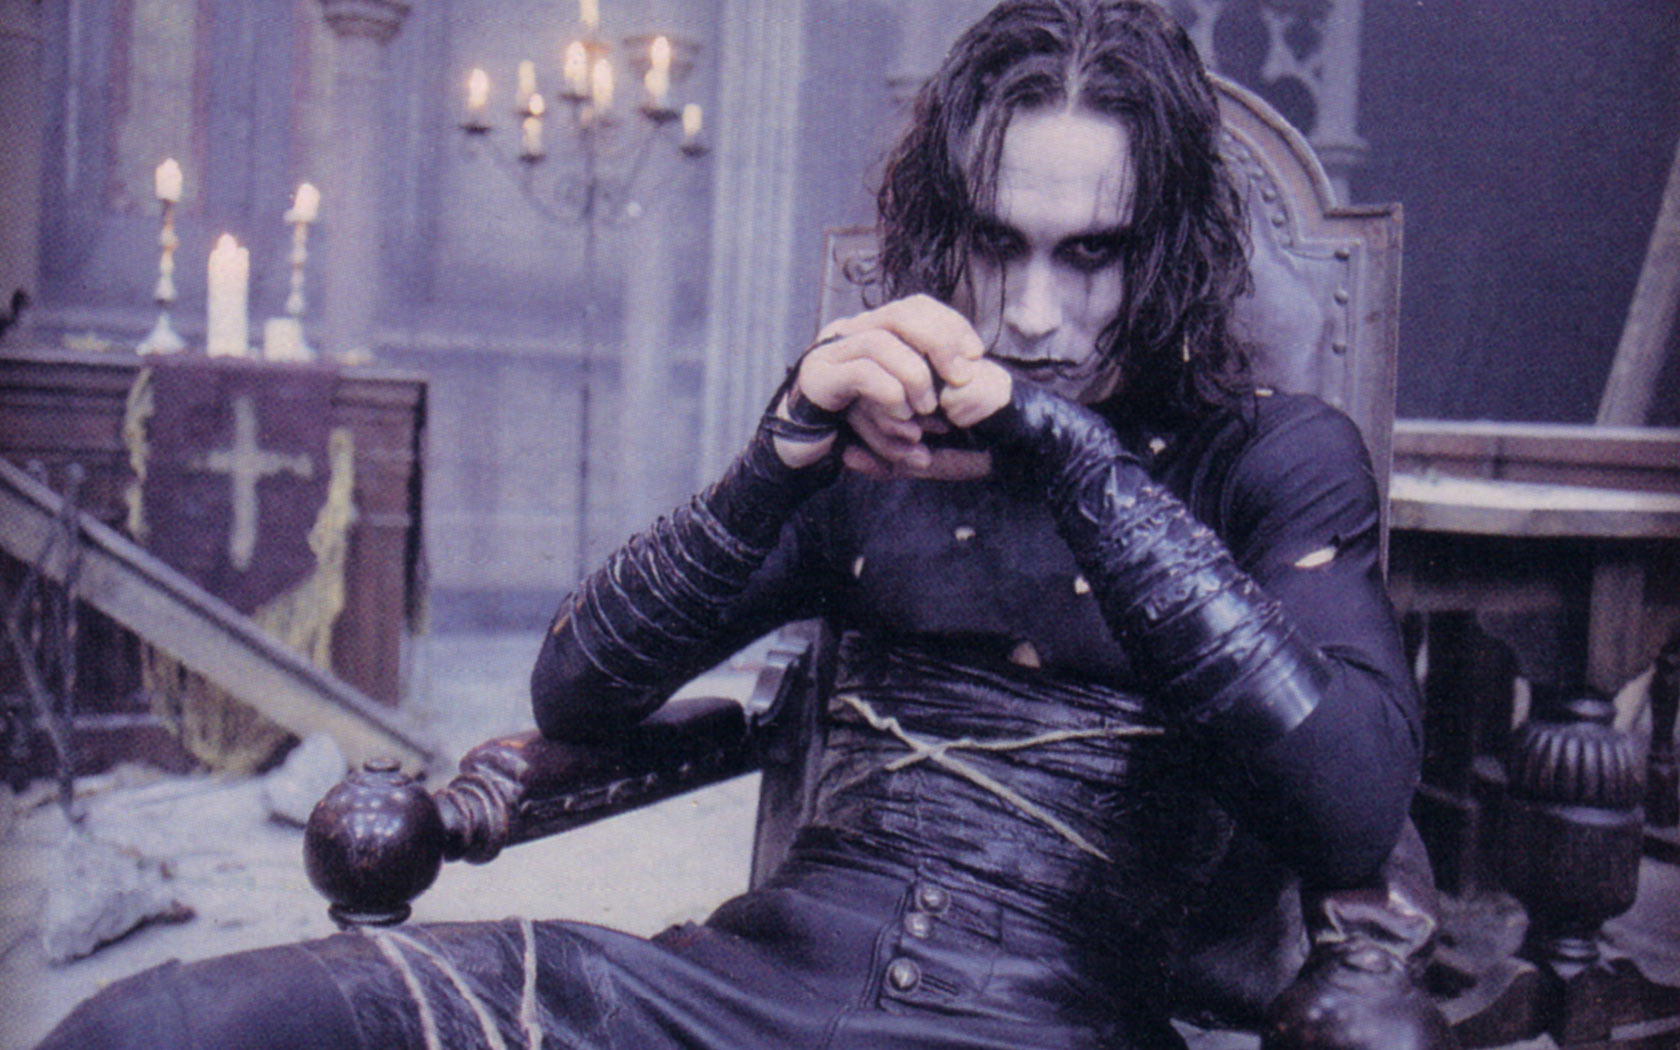 'The Crow' Soundtrack: The Outsider Mixtape of Forever